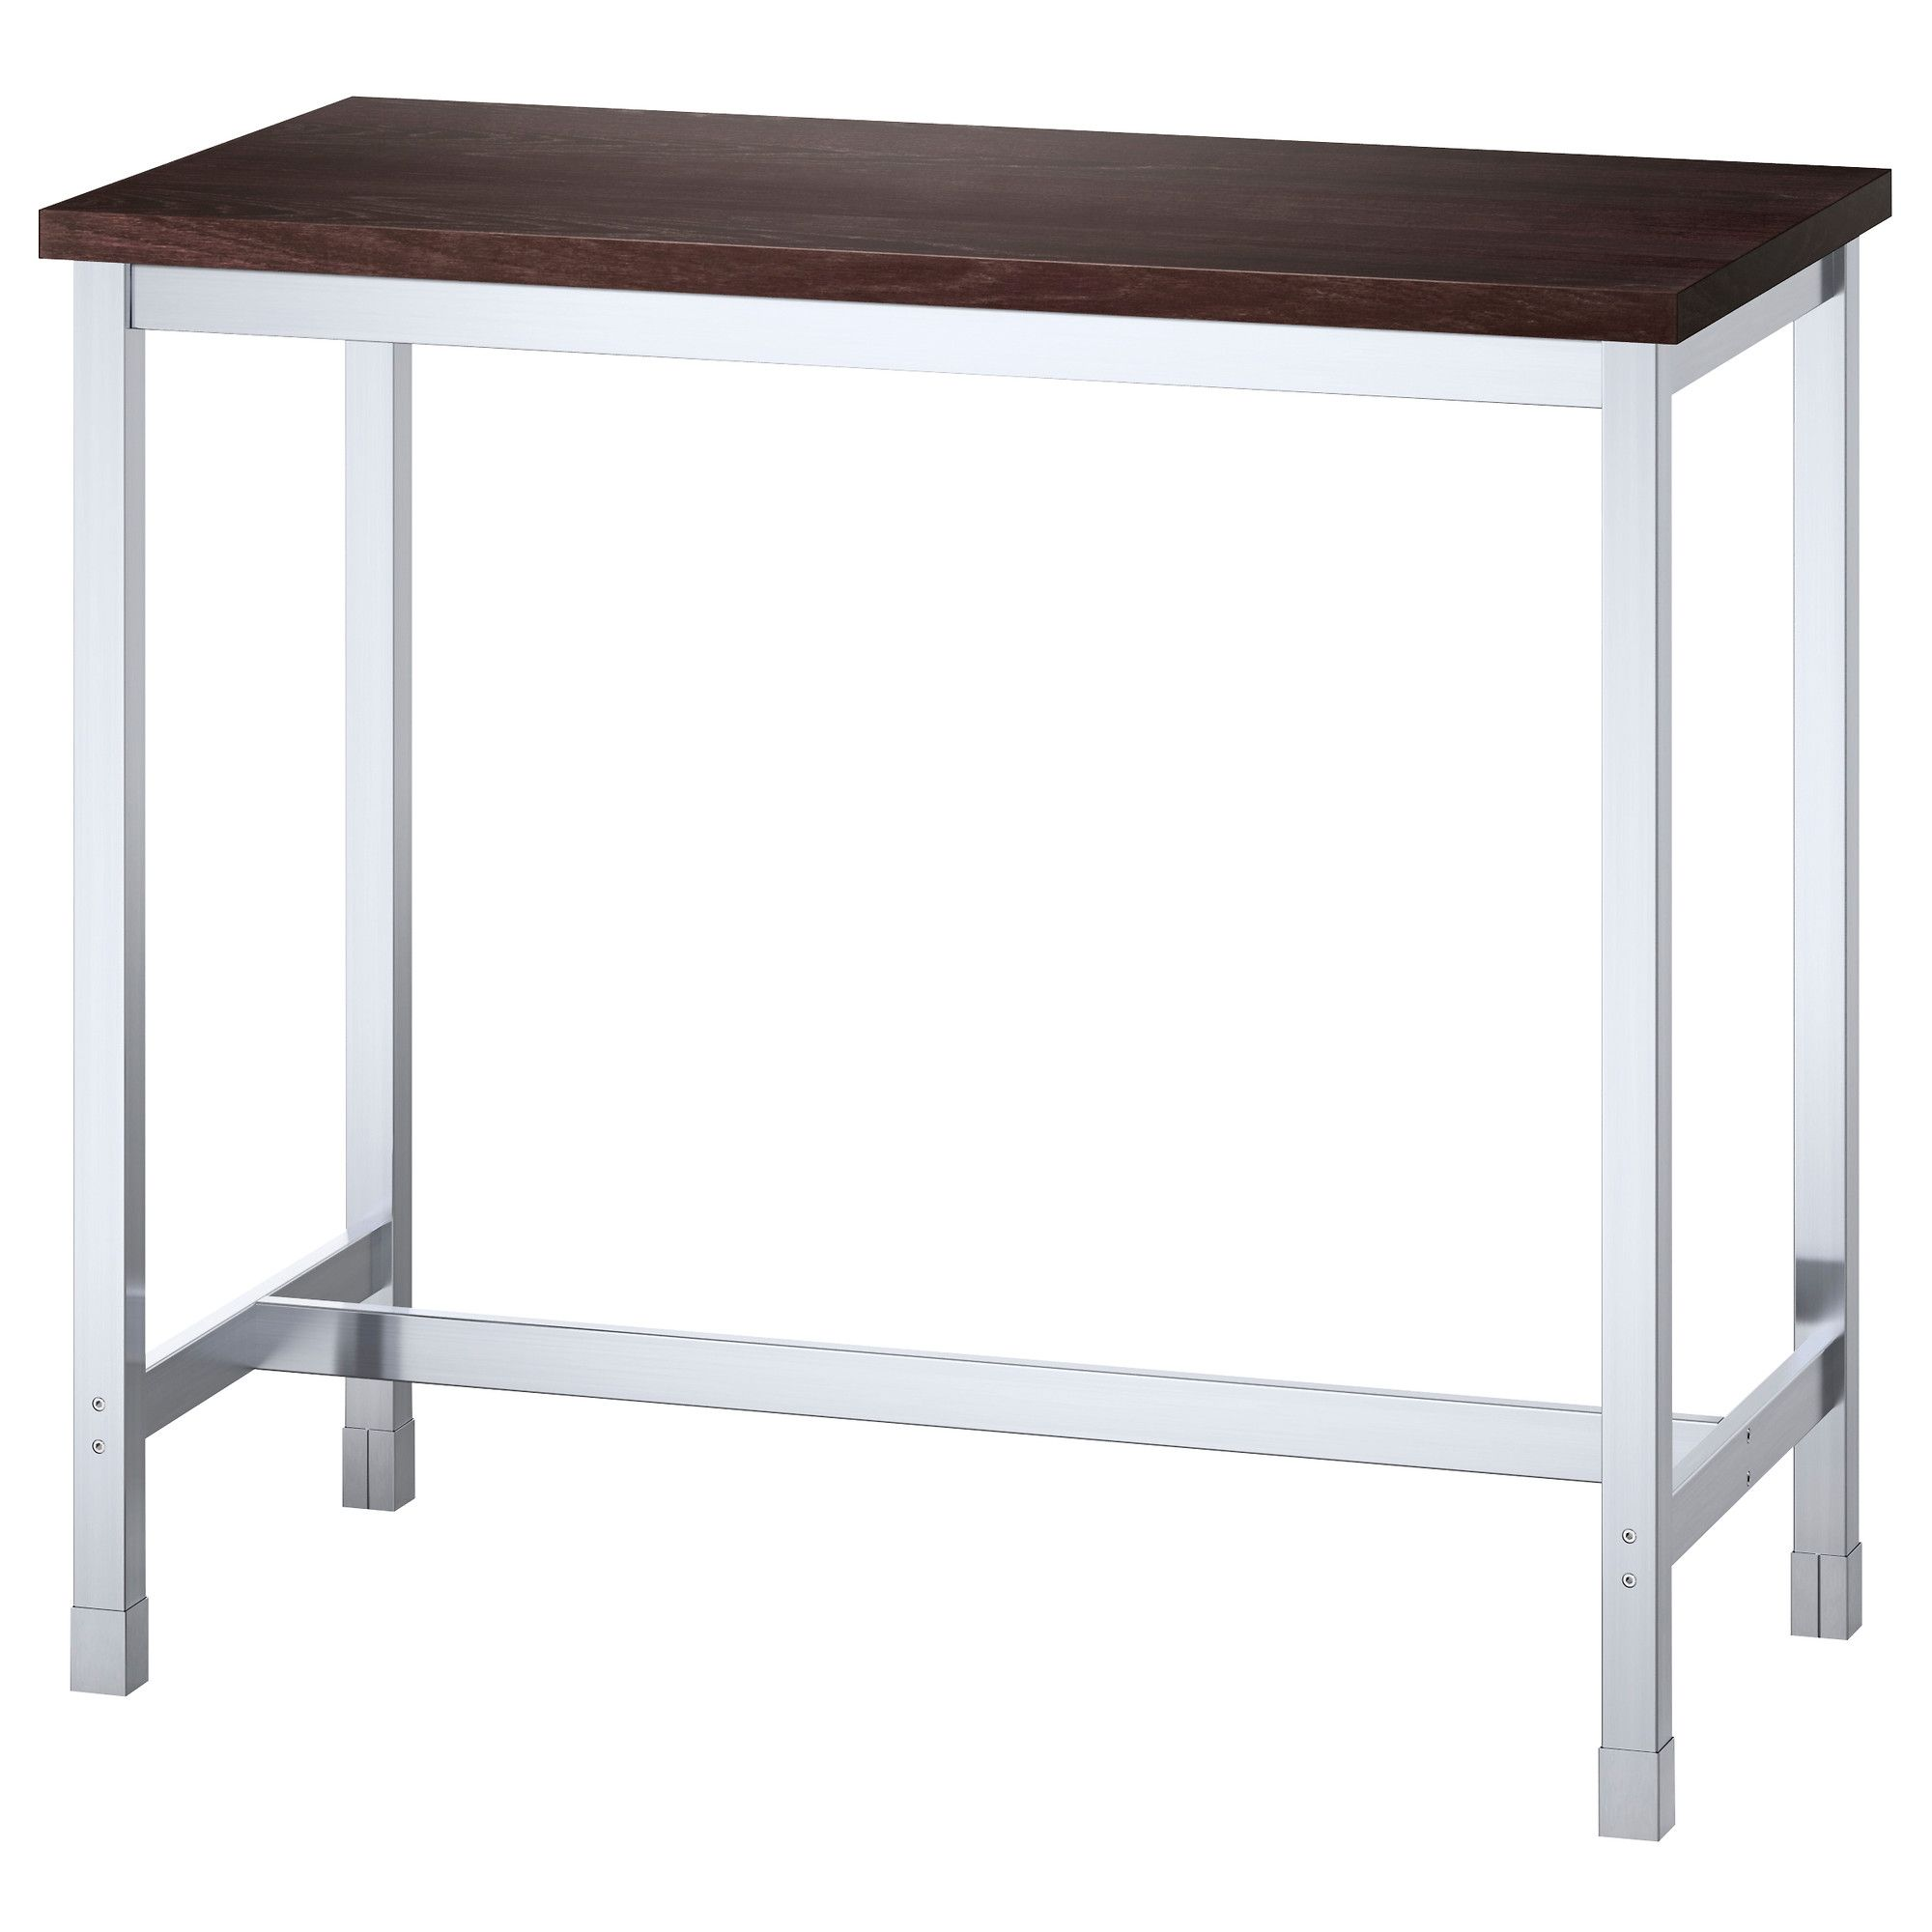 Counter Height Table Sets Ikea : ... tables counter height table tall table dining room tables ikea bar